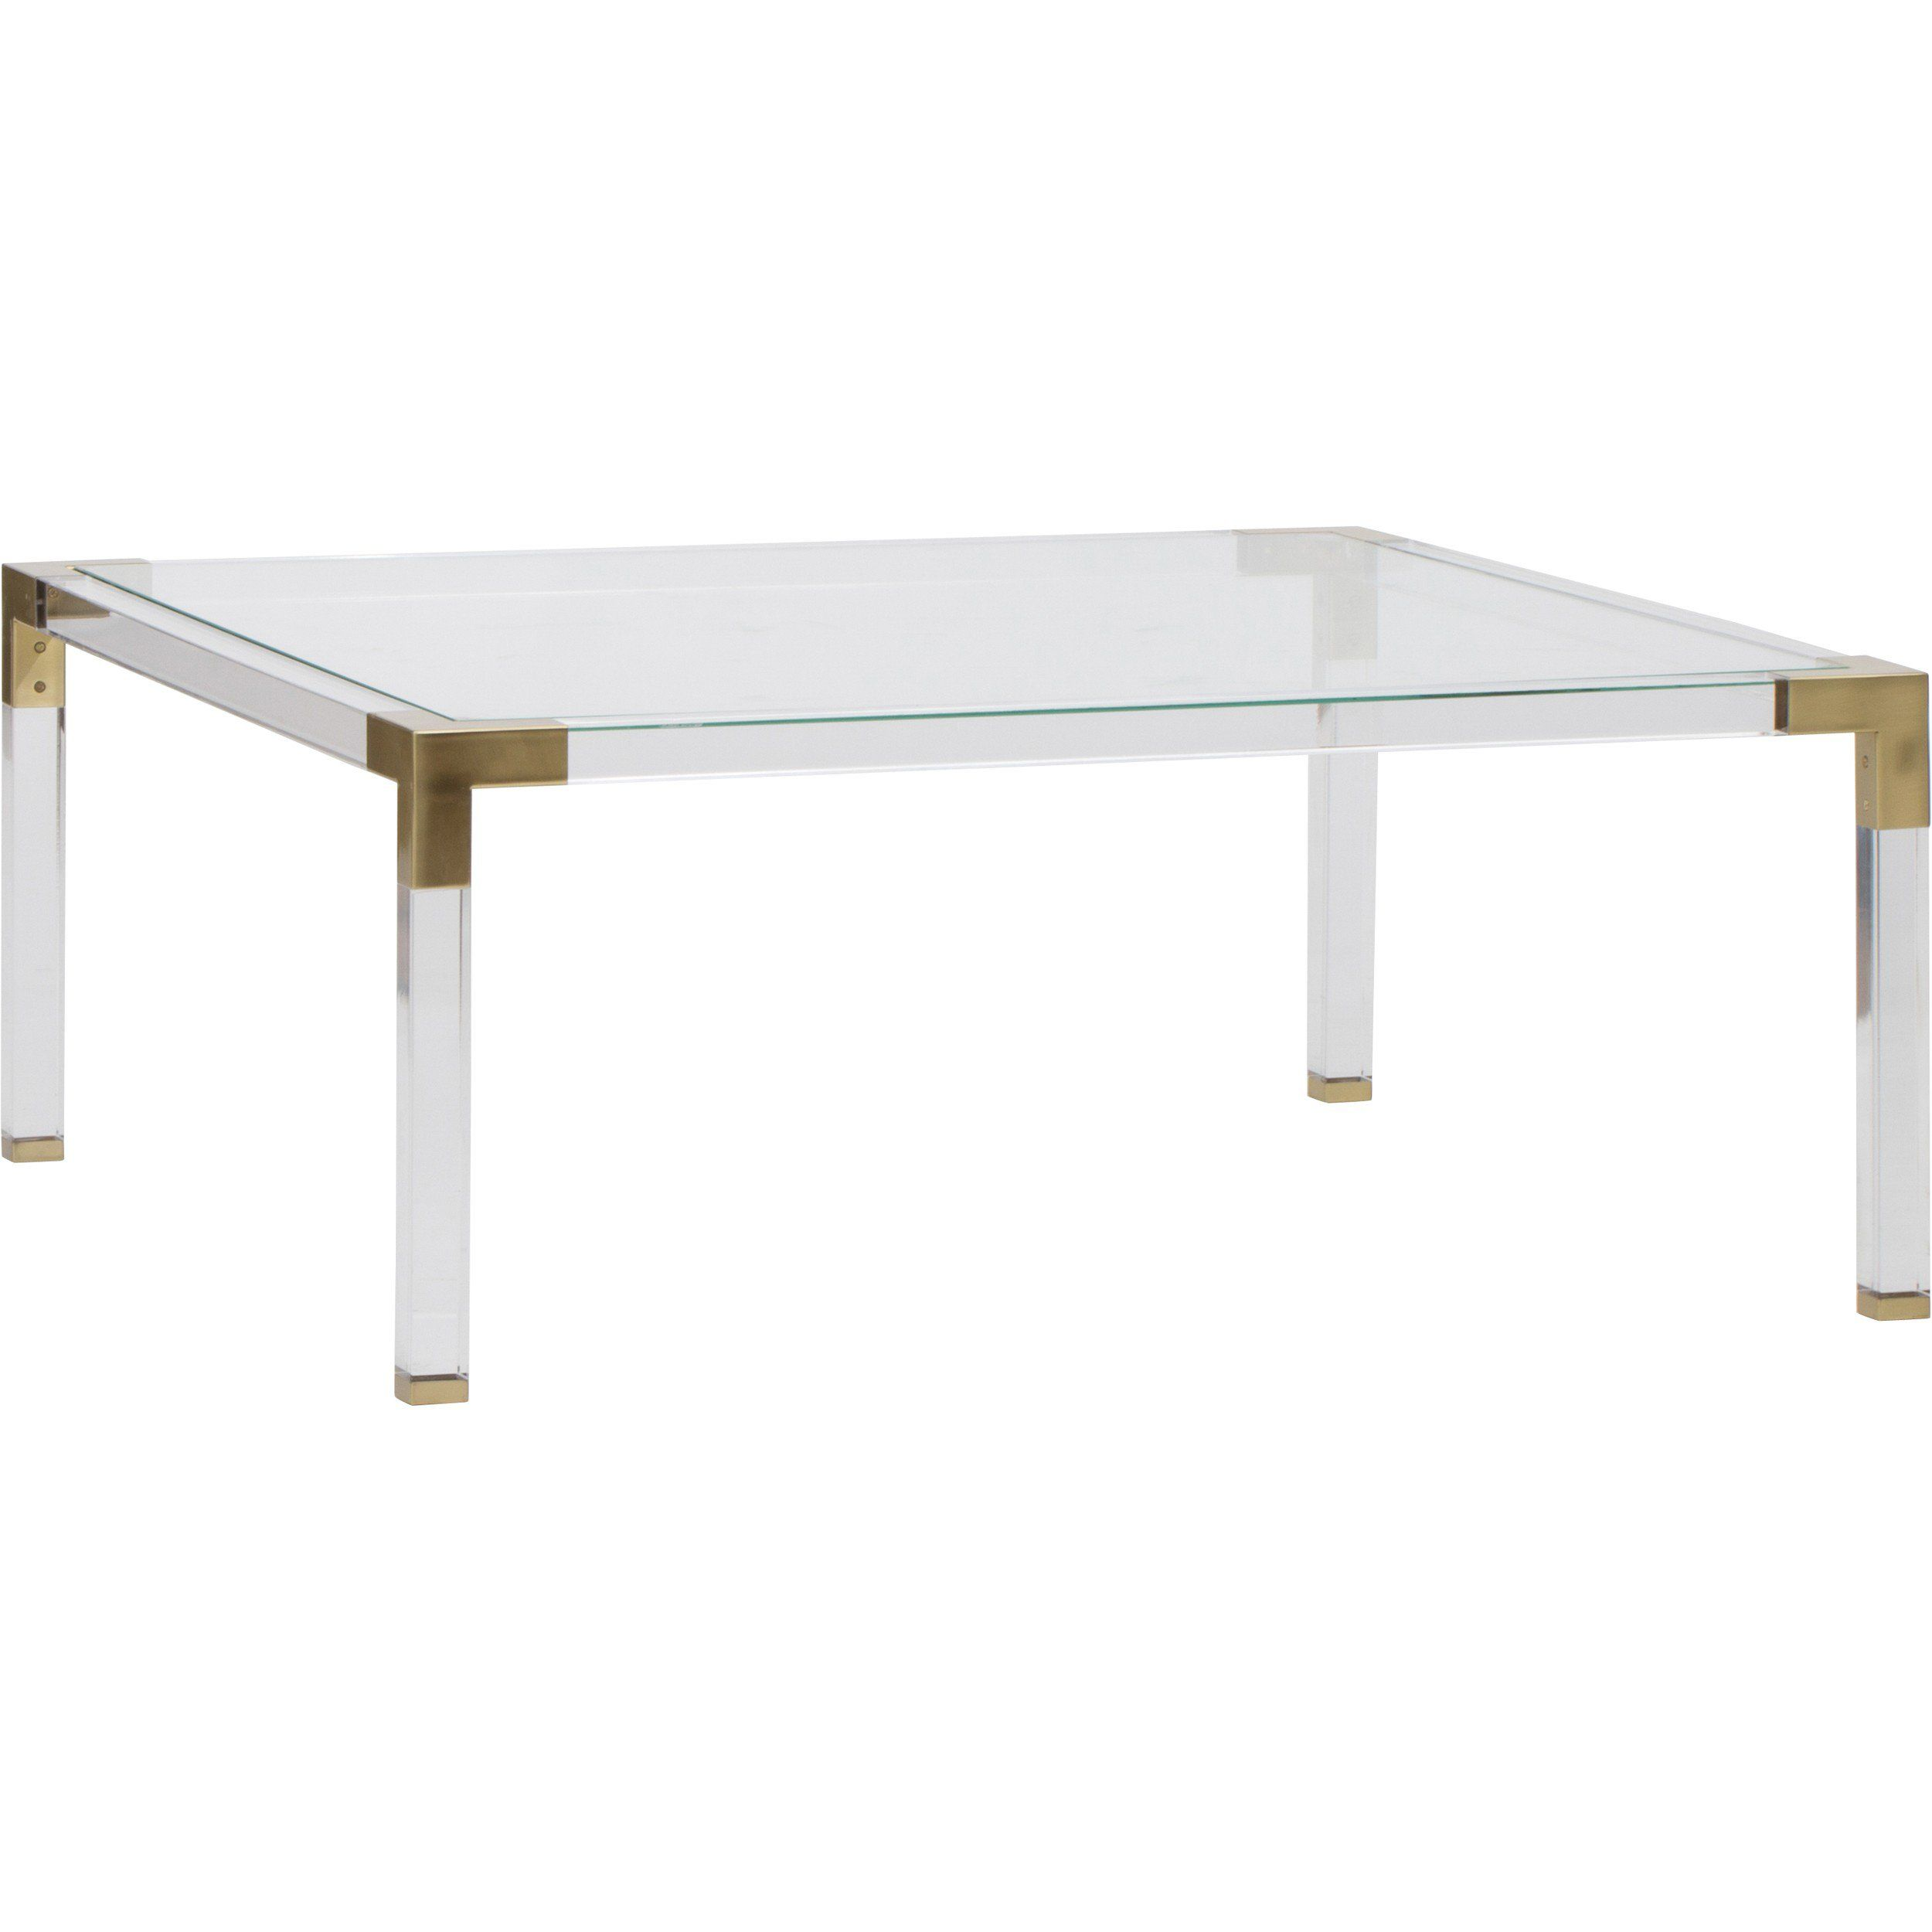 Maci Acrylic Coffee Table W Gold Hardware Accents